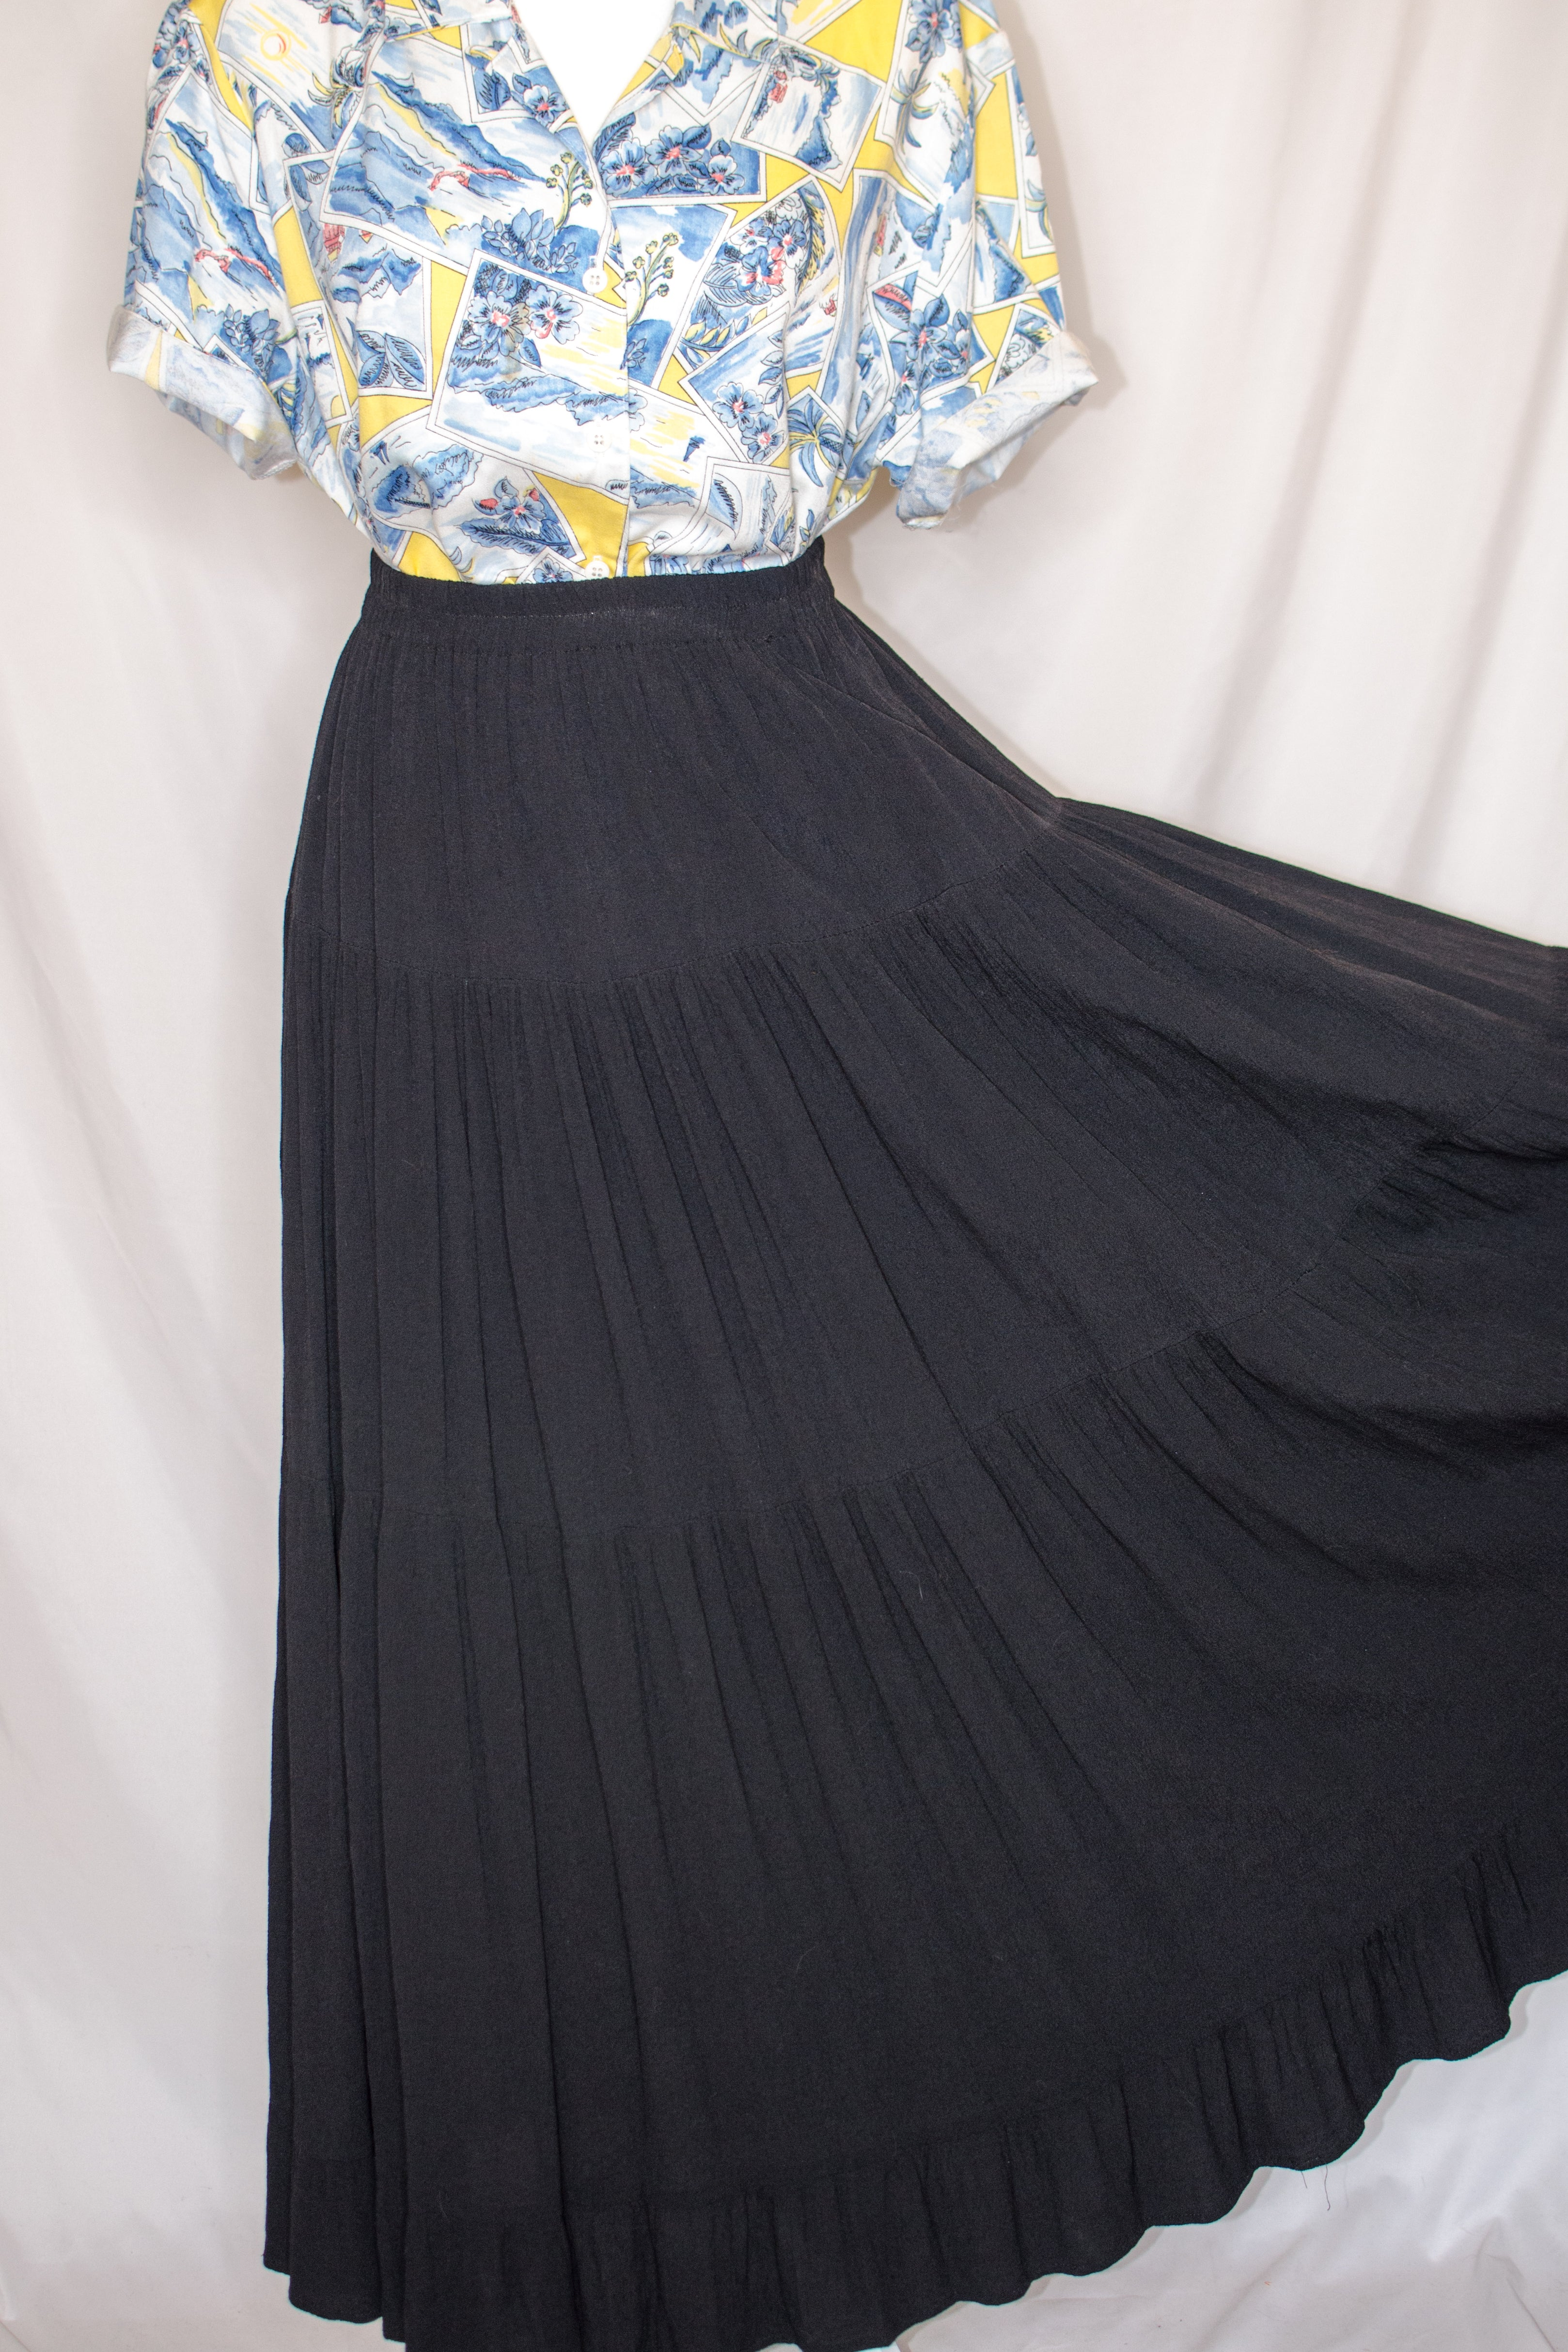 Vintage 70s Black Tiered Maxi Skirt / S-M